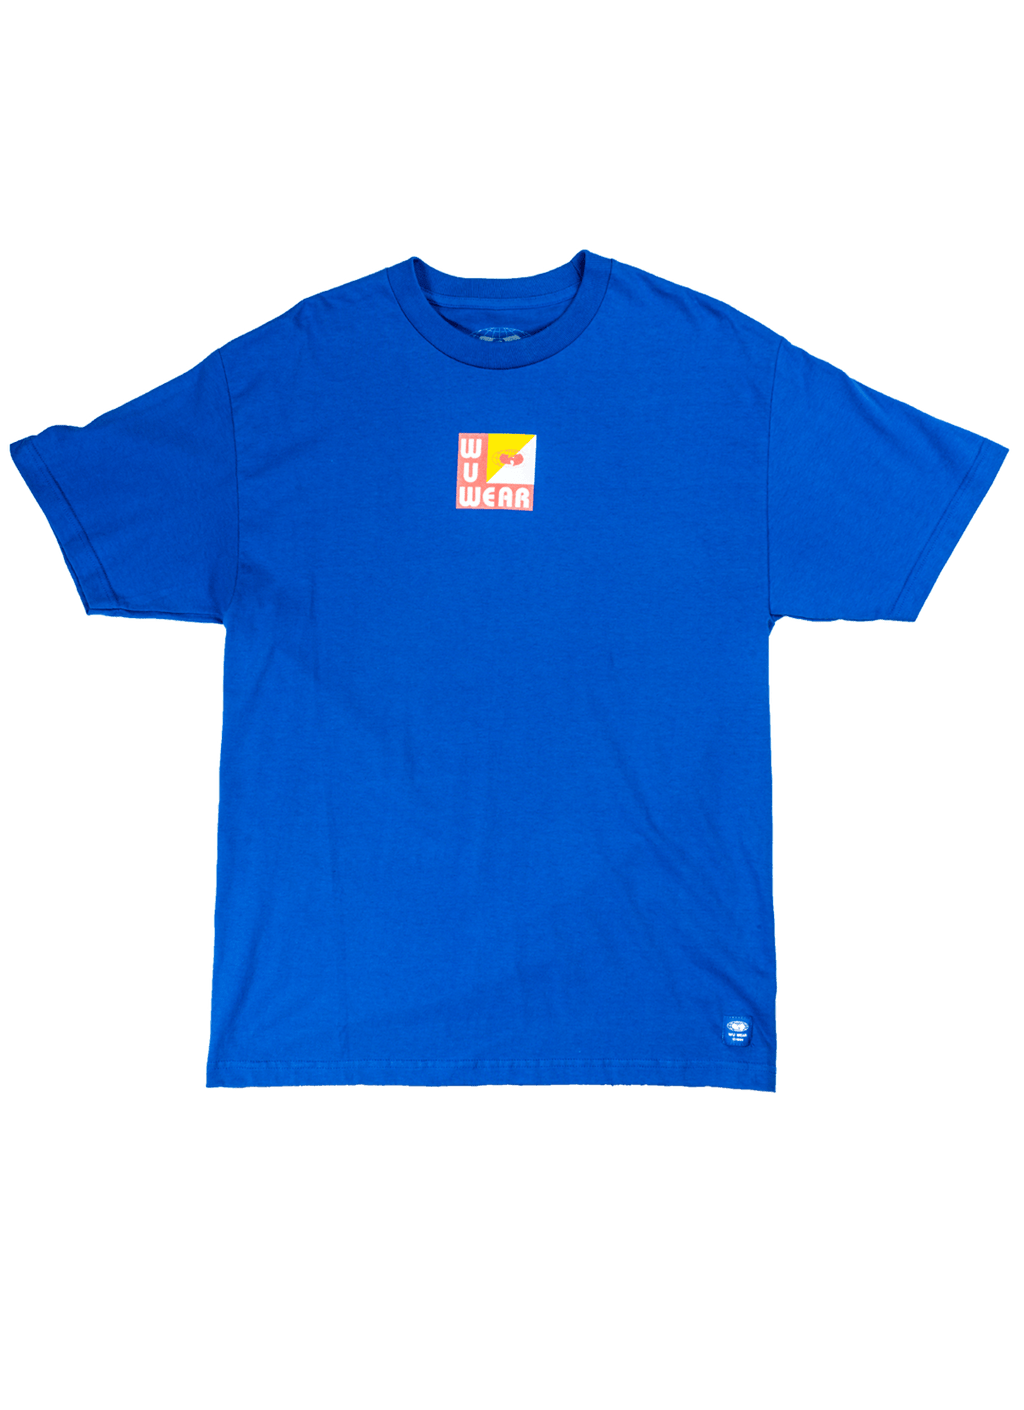 WU TANG BOX TEE -  BLUE - Wu Wear